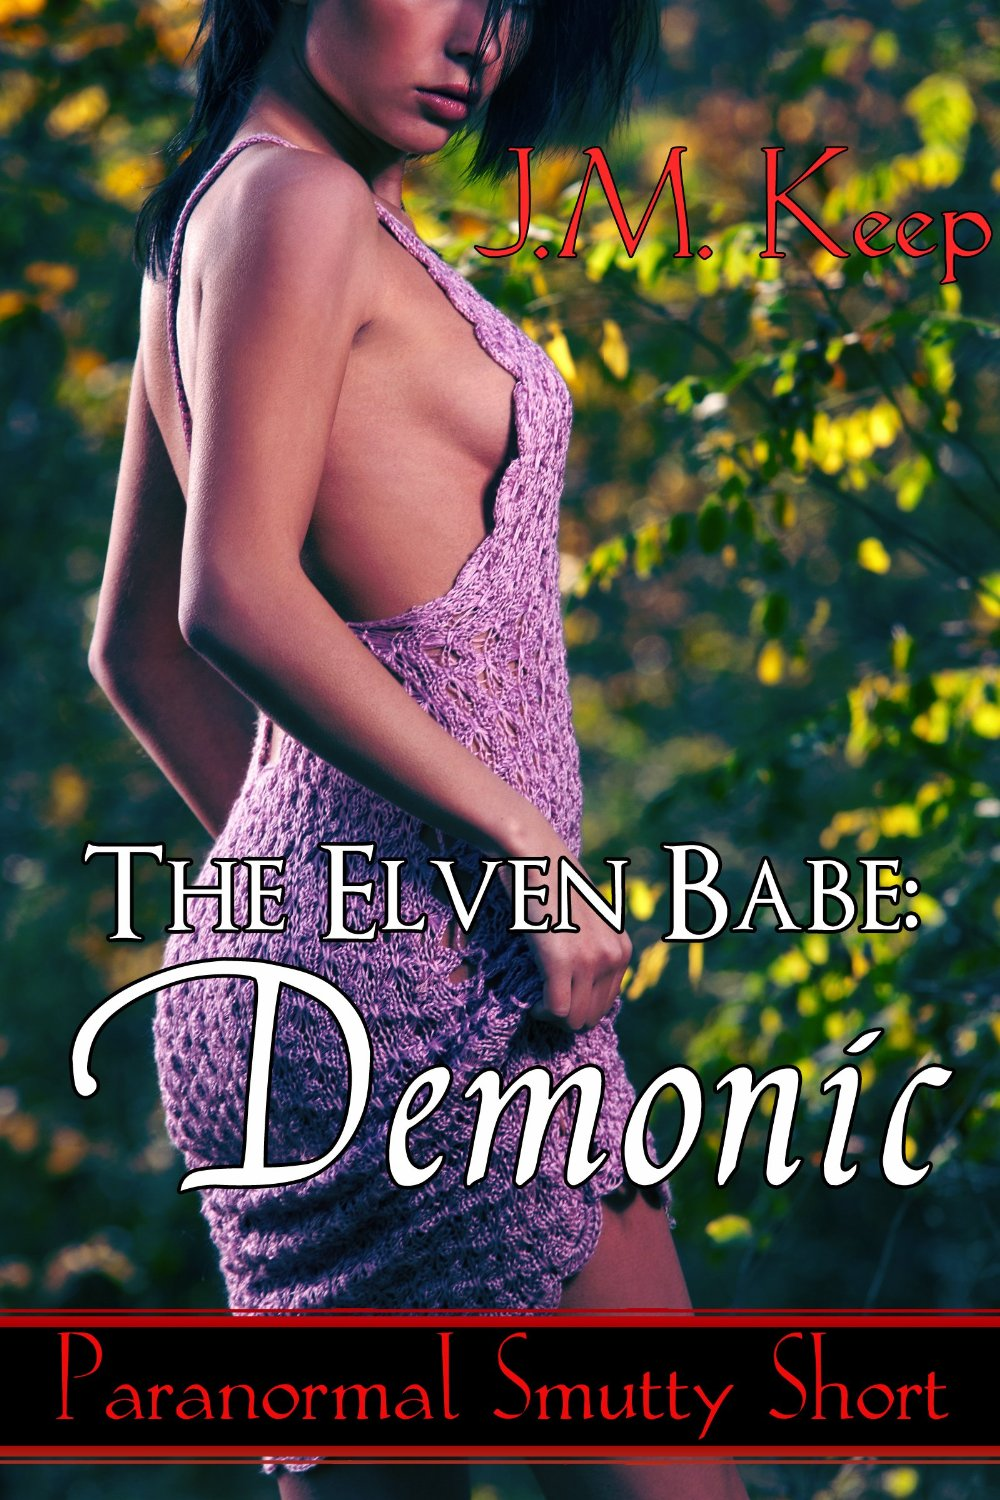 The Elven Babe: Demonic: Paranormal Smutty Short (The Elven Babe by J.M. Keep Book 2)